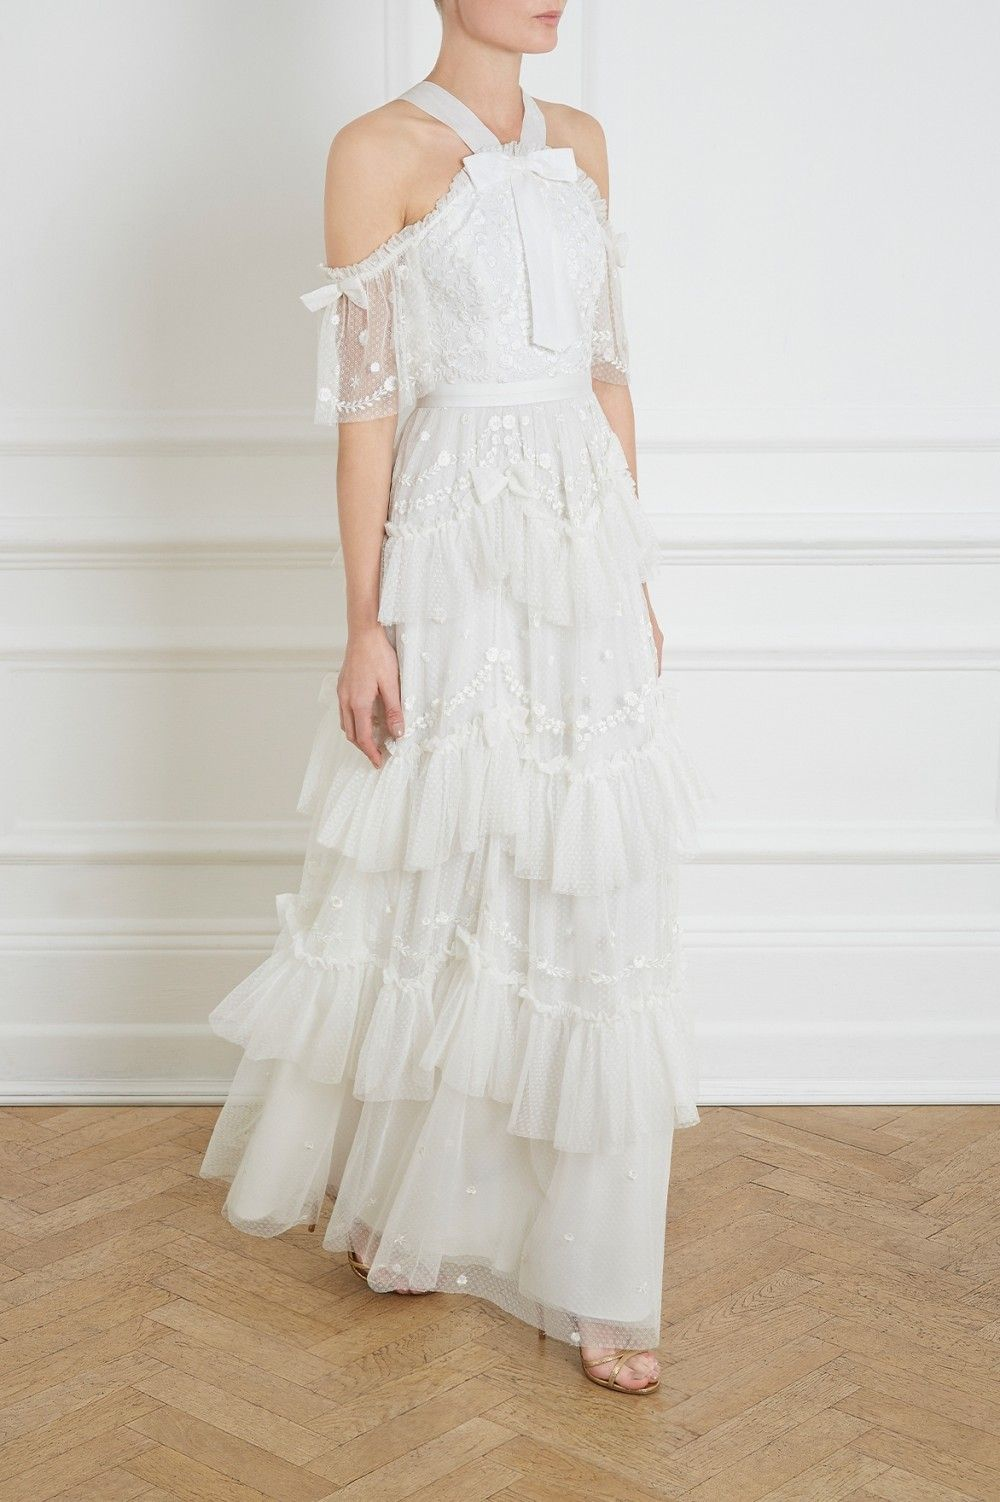 Day dreamers gown in pearl from needle u thread cr clothes in